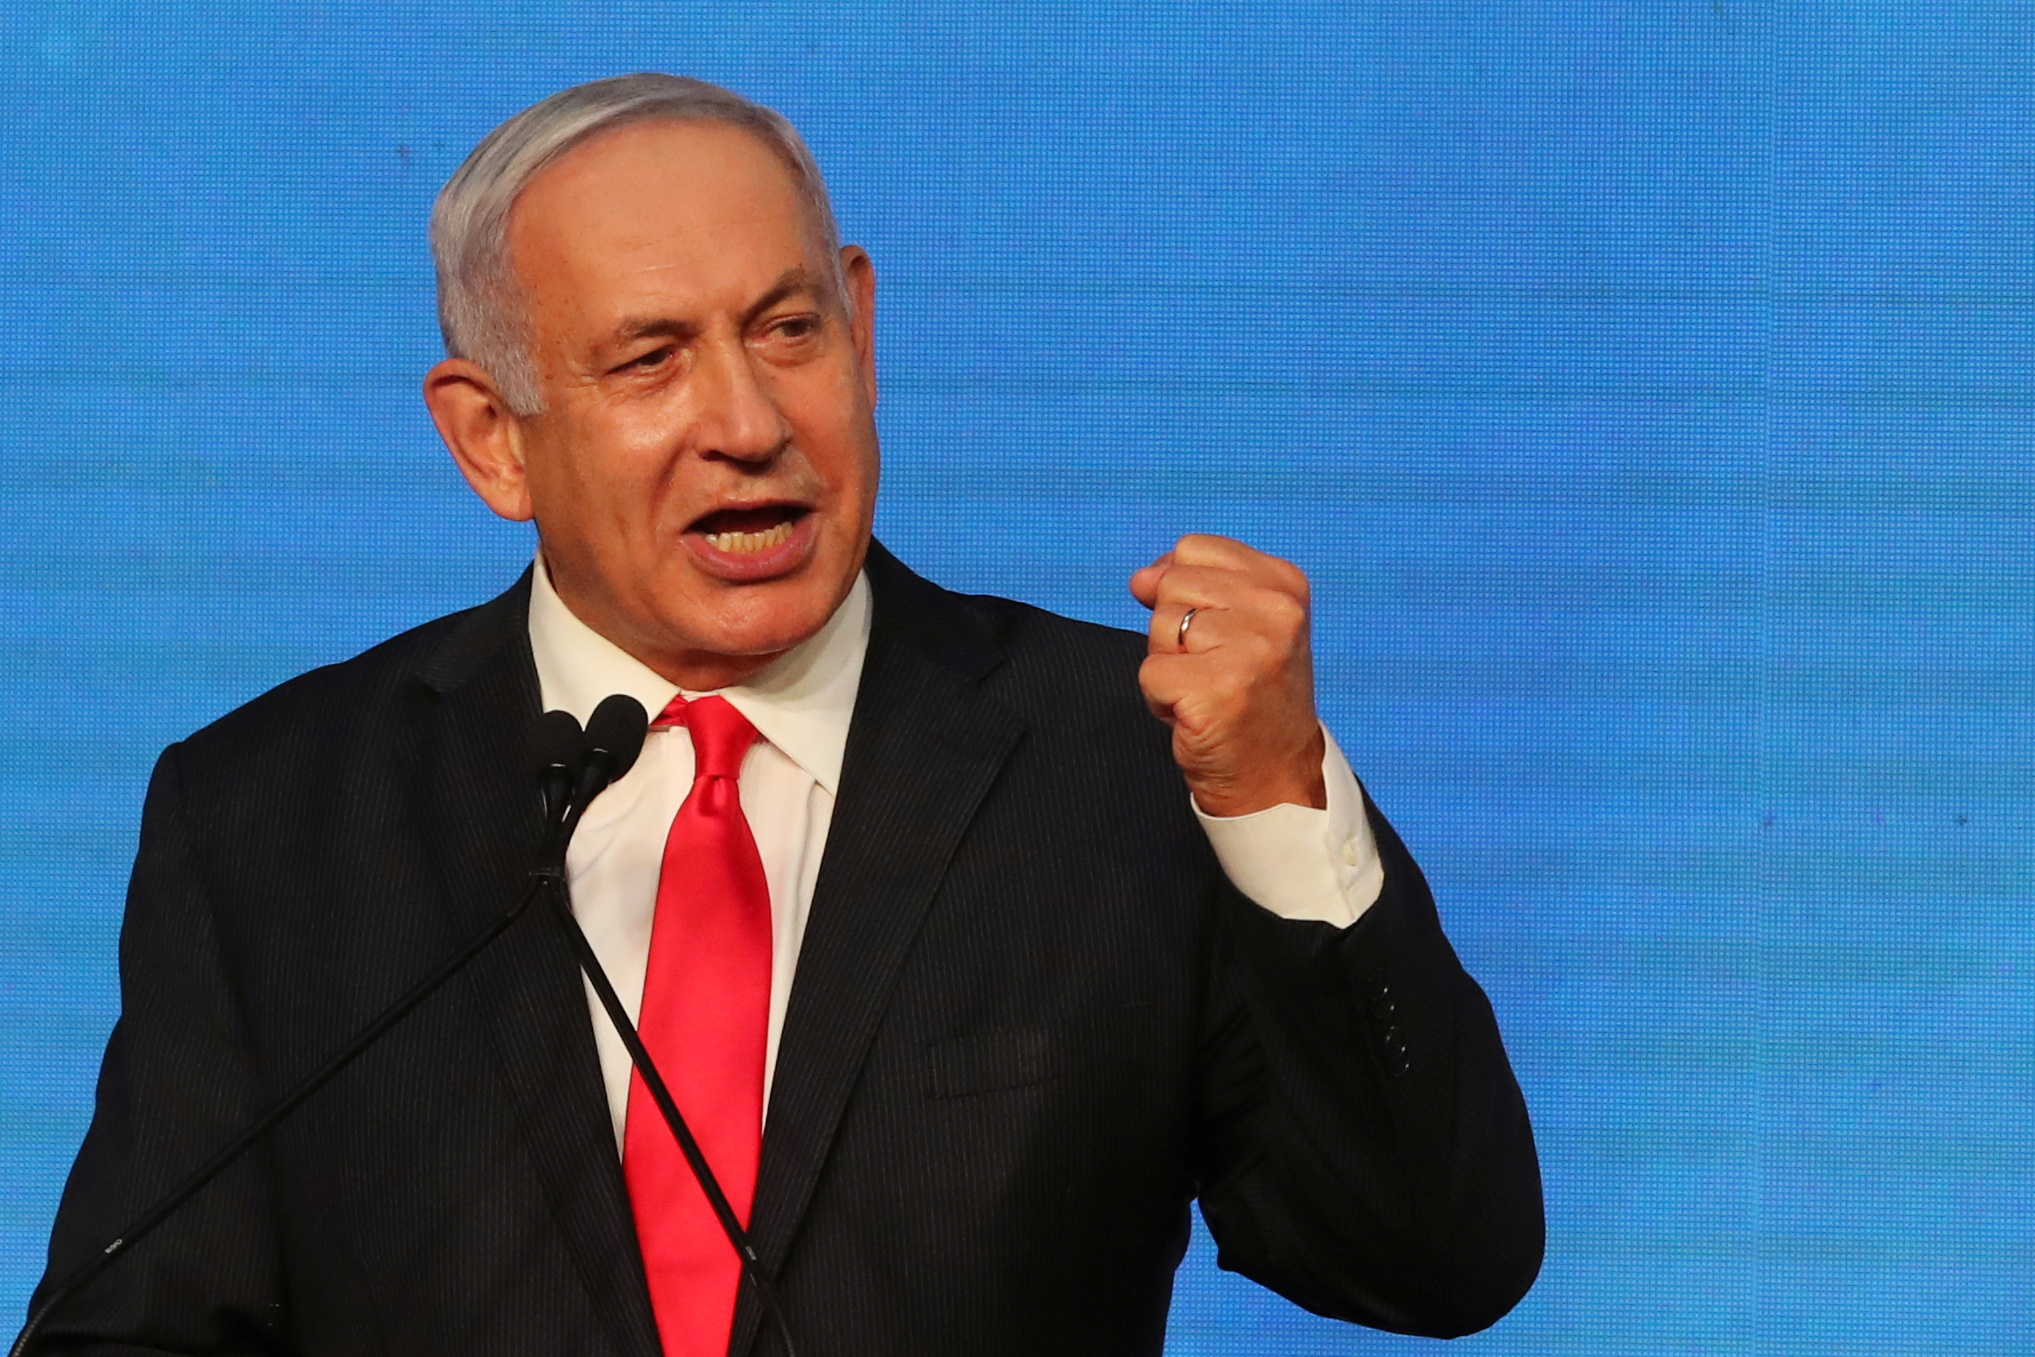 Israeli Prime Minister Benjamin Netanyahu gestures as he delivers a speech to supporters following the announcement of exit polls in Israel's general election at his Likud party headquarters in Jerusalem March 24, 2021. REUTERS/Ammar Awad